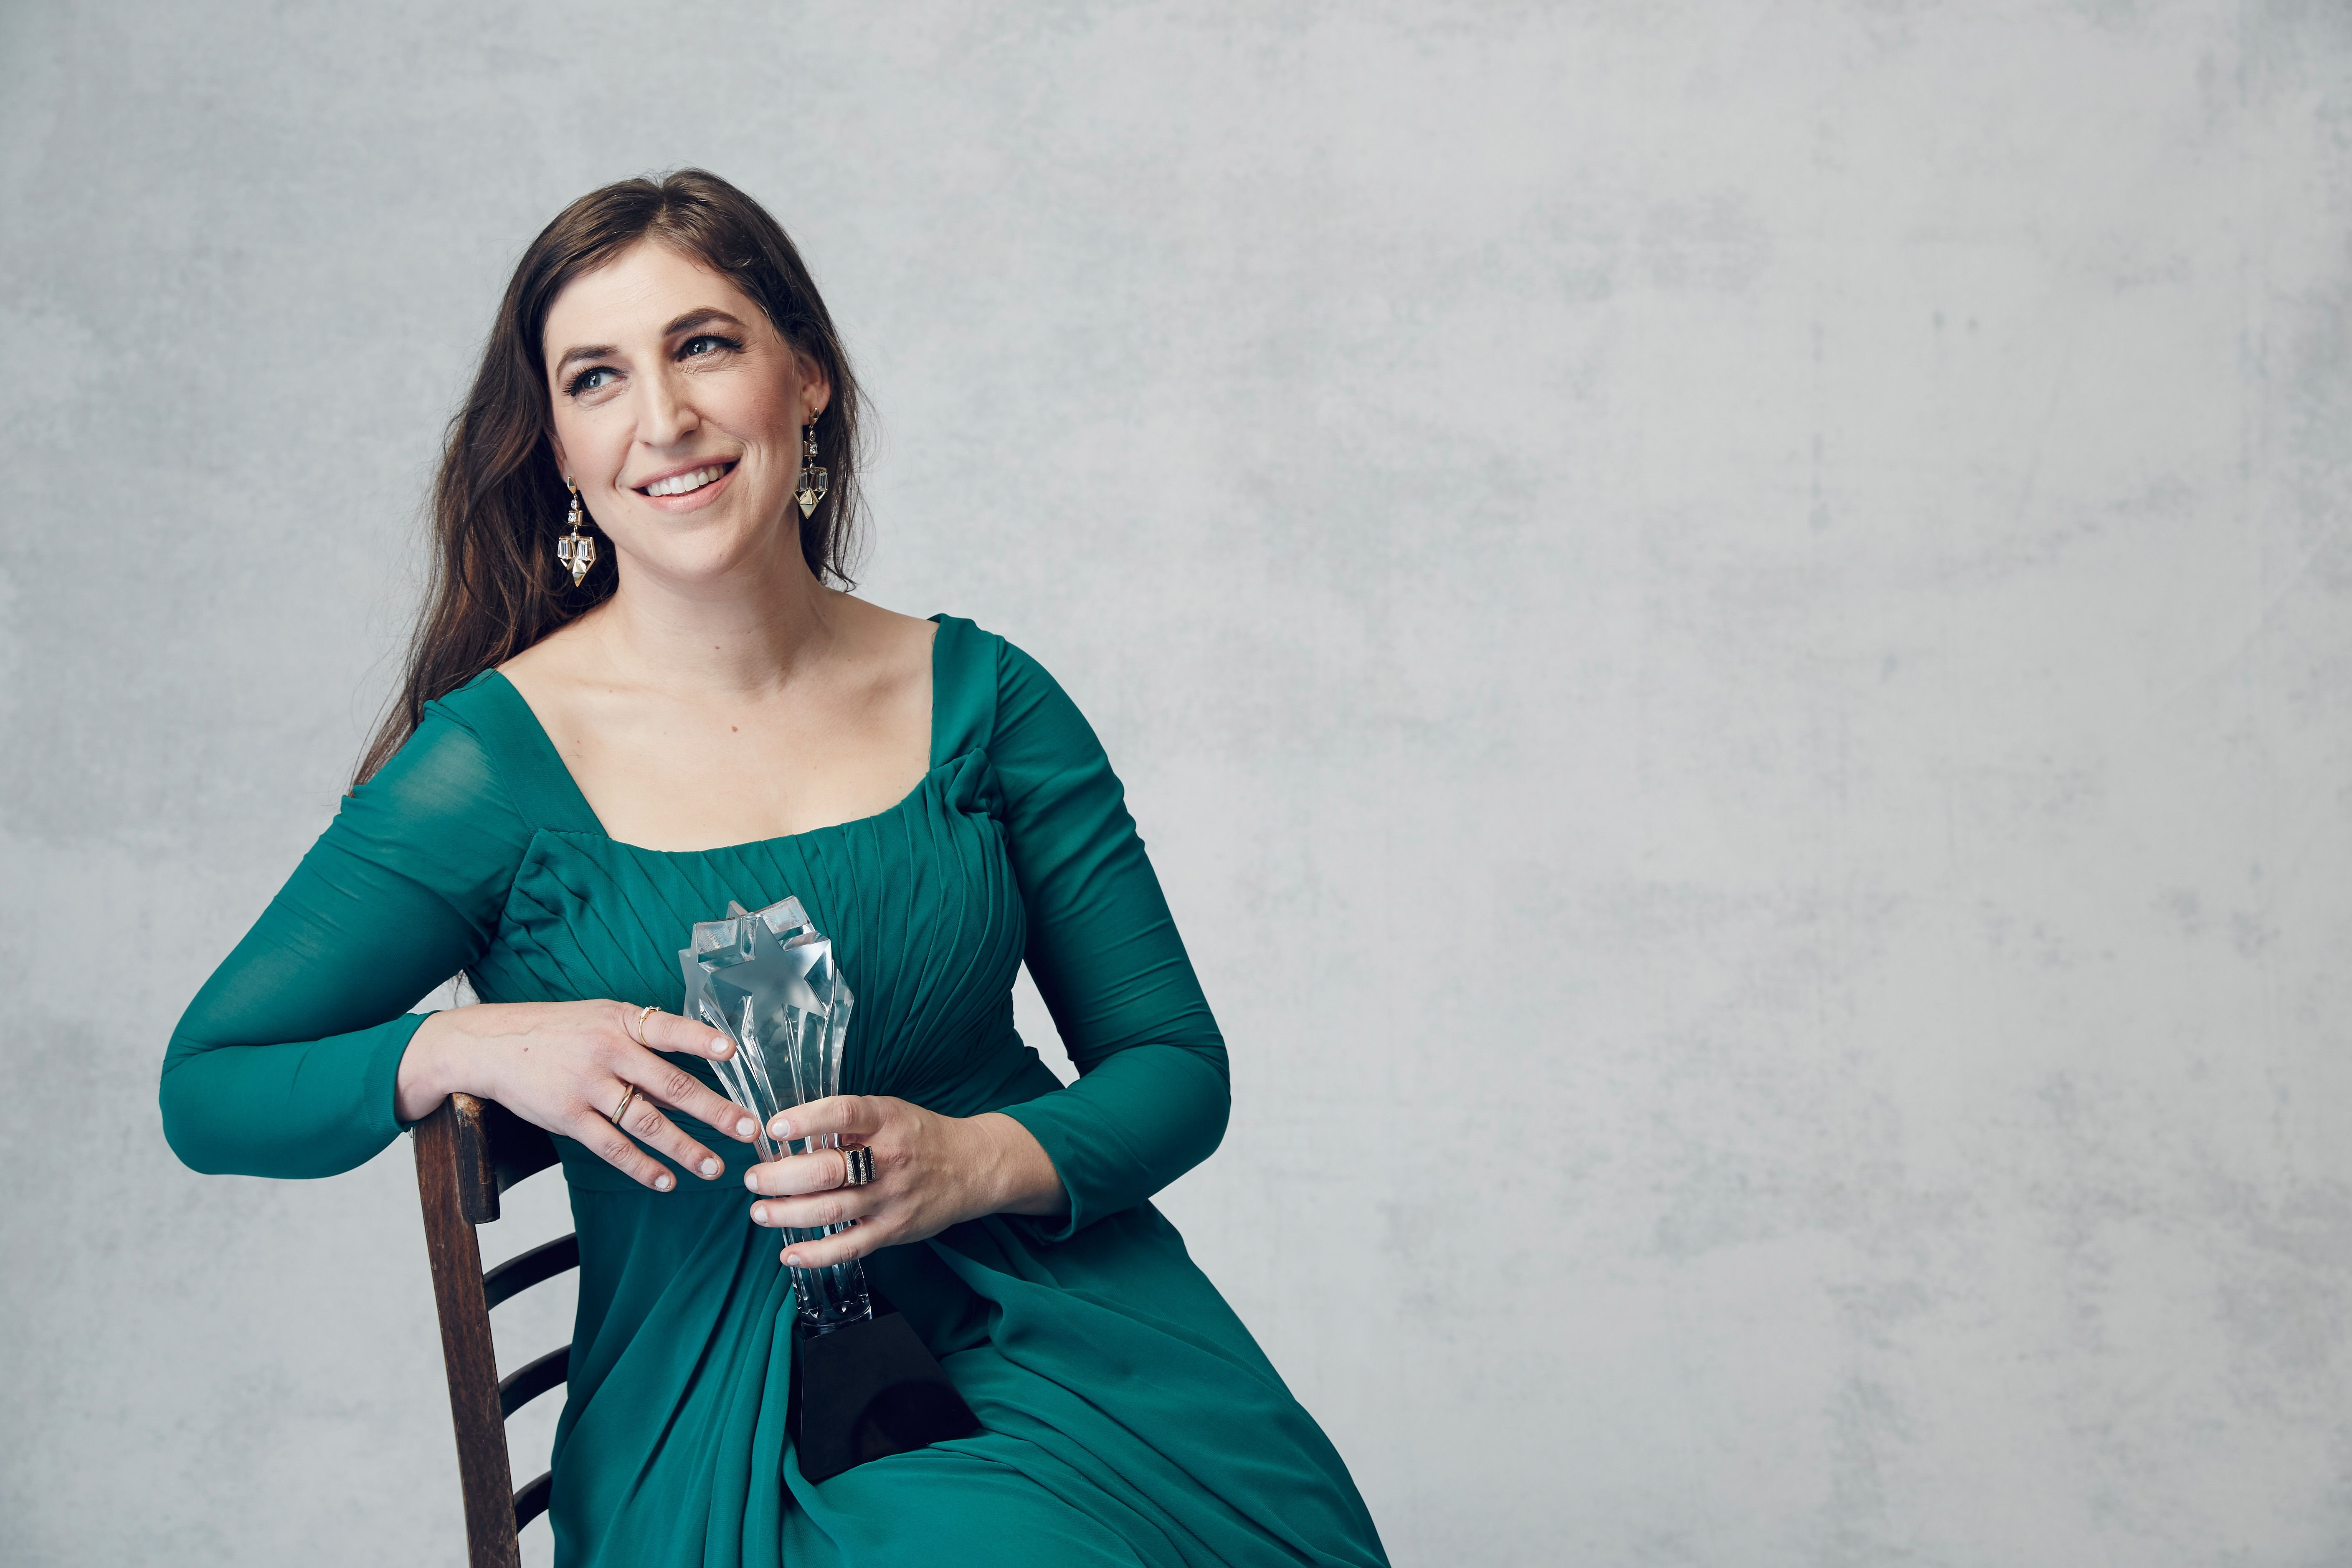 Mayim Bialik poses for a portrait during the 21st Annual Critics' Choice Awards on January 17, 2016, in Santa Monica, California | Photo: Smallz & Raskind/Getty Images